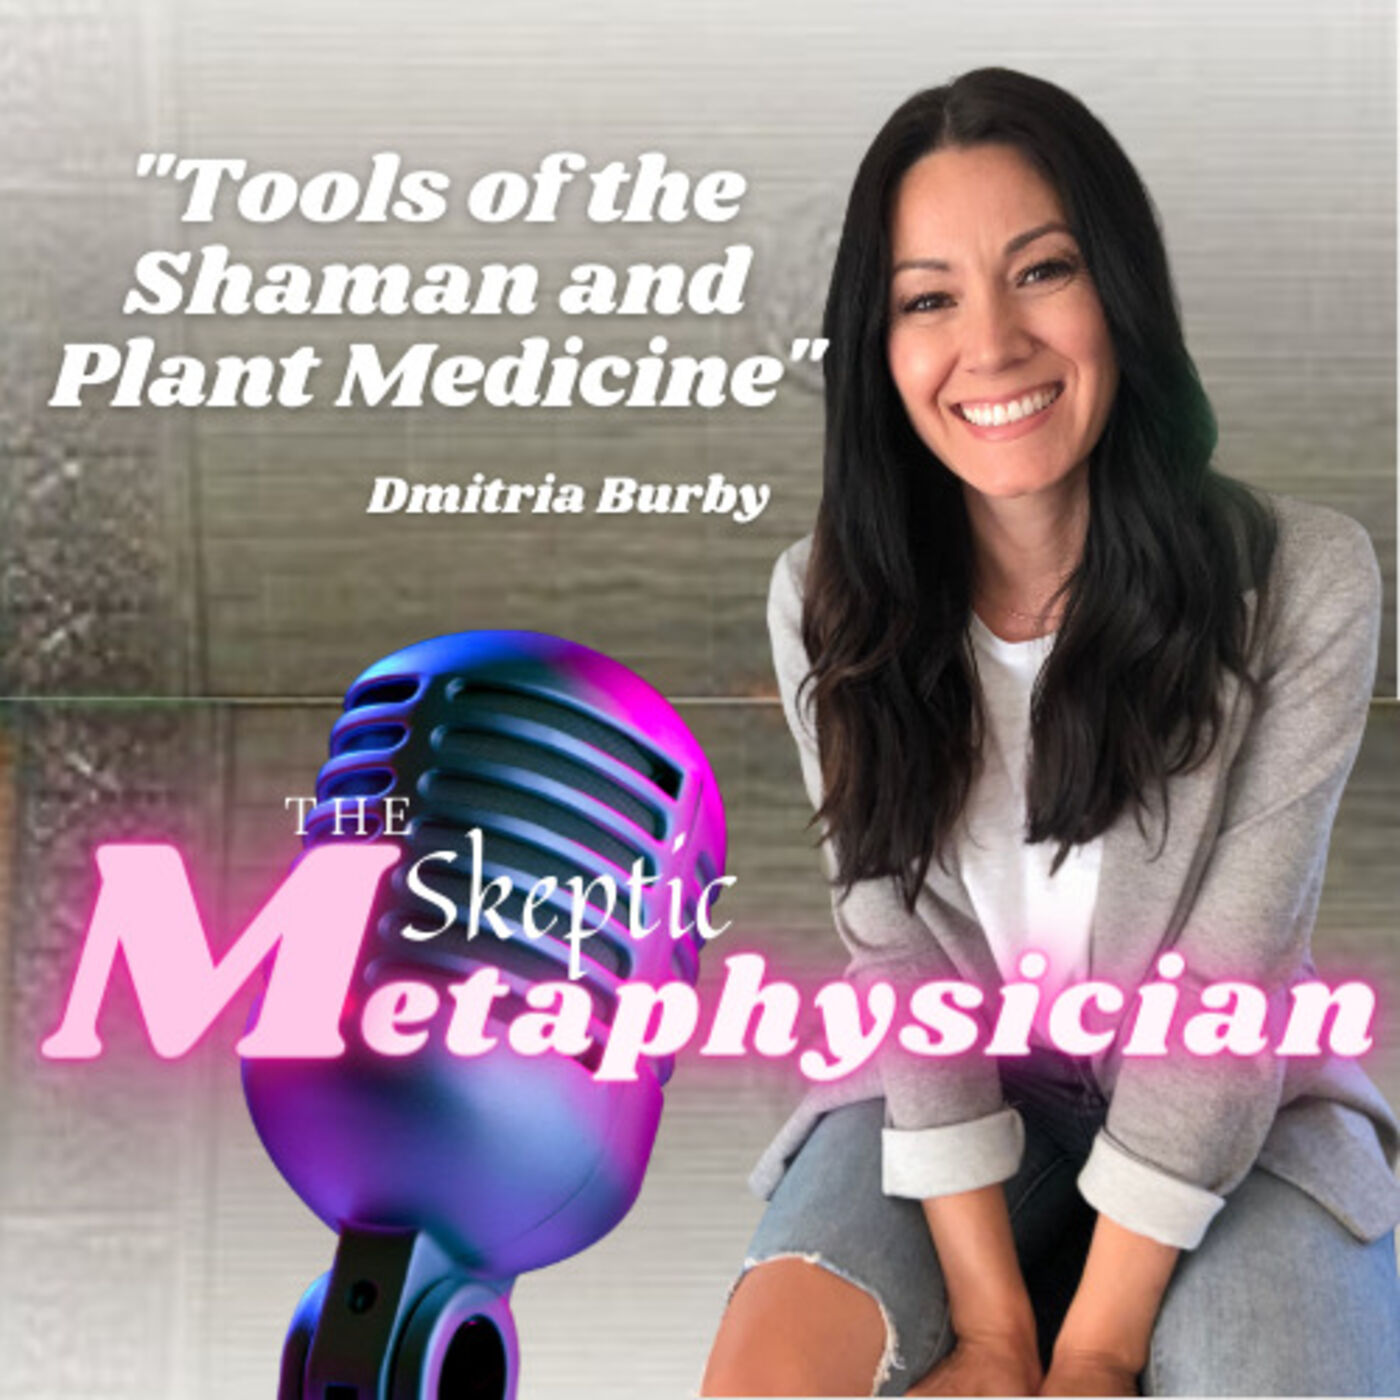 Tools of the Shaman and Plant Medicine